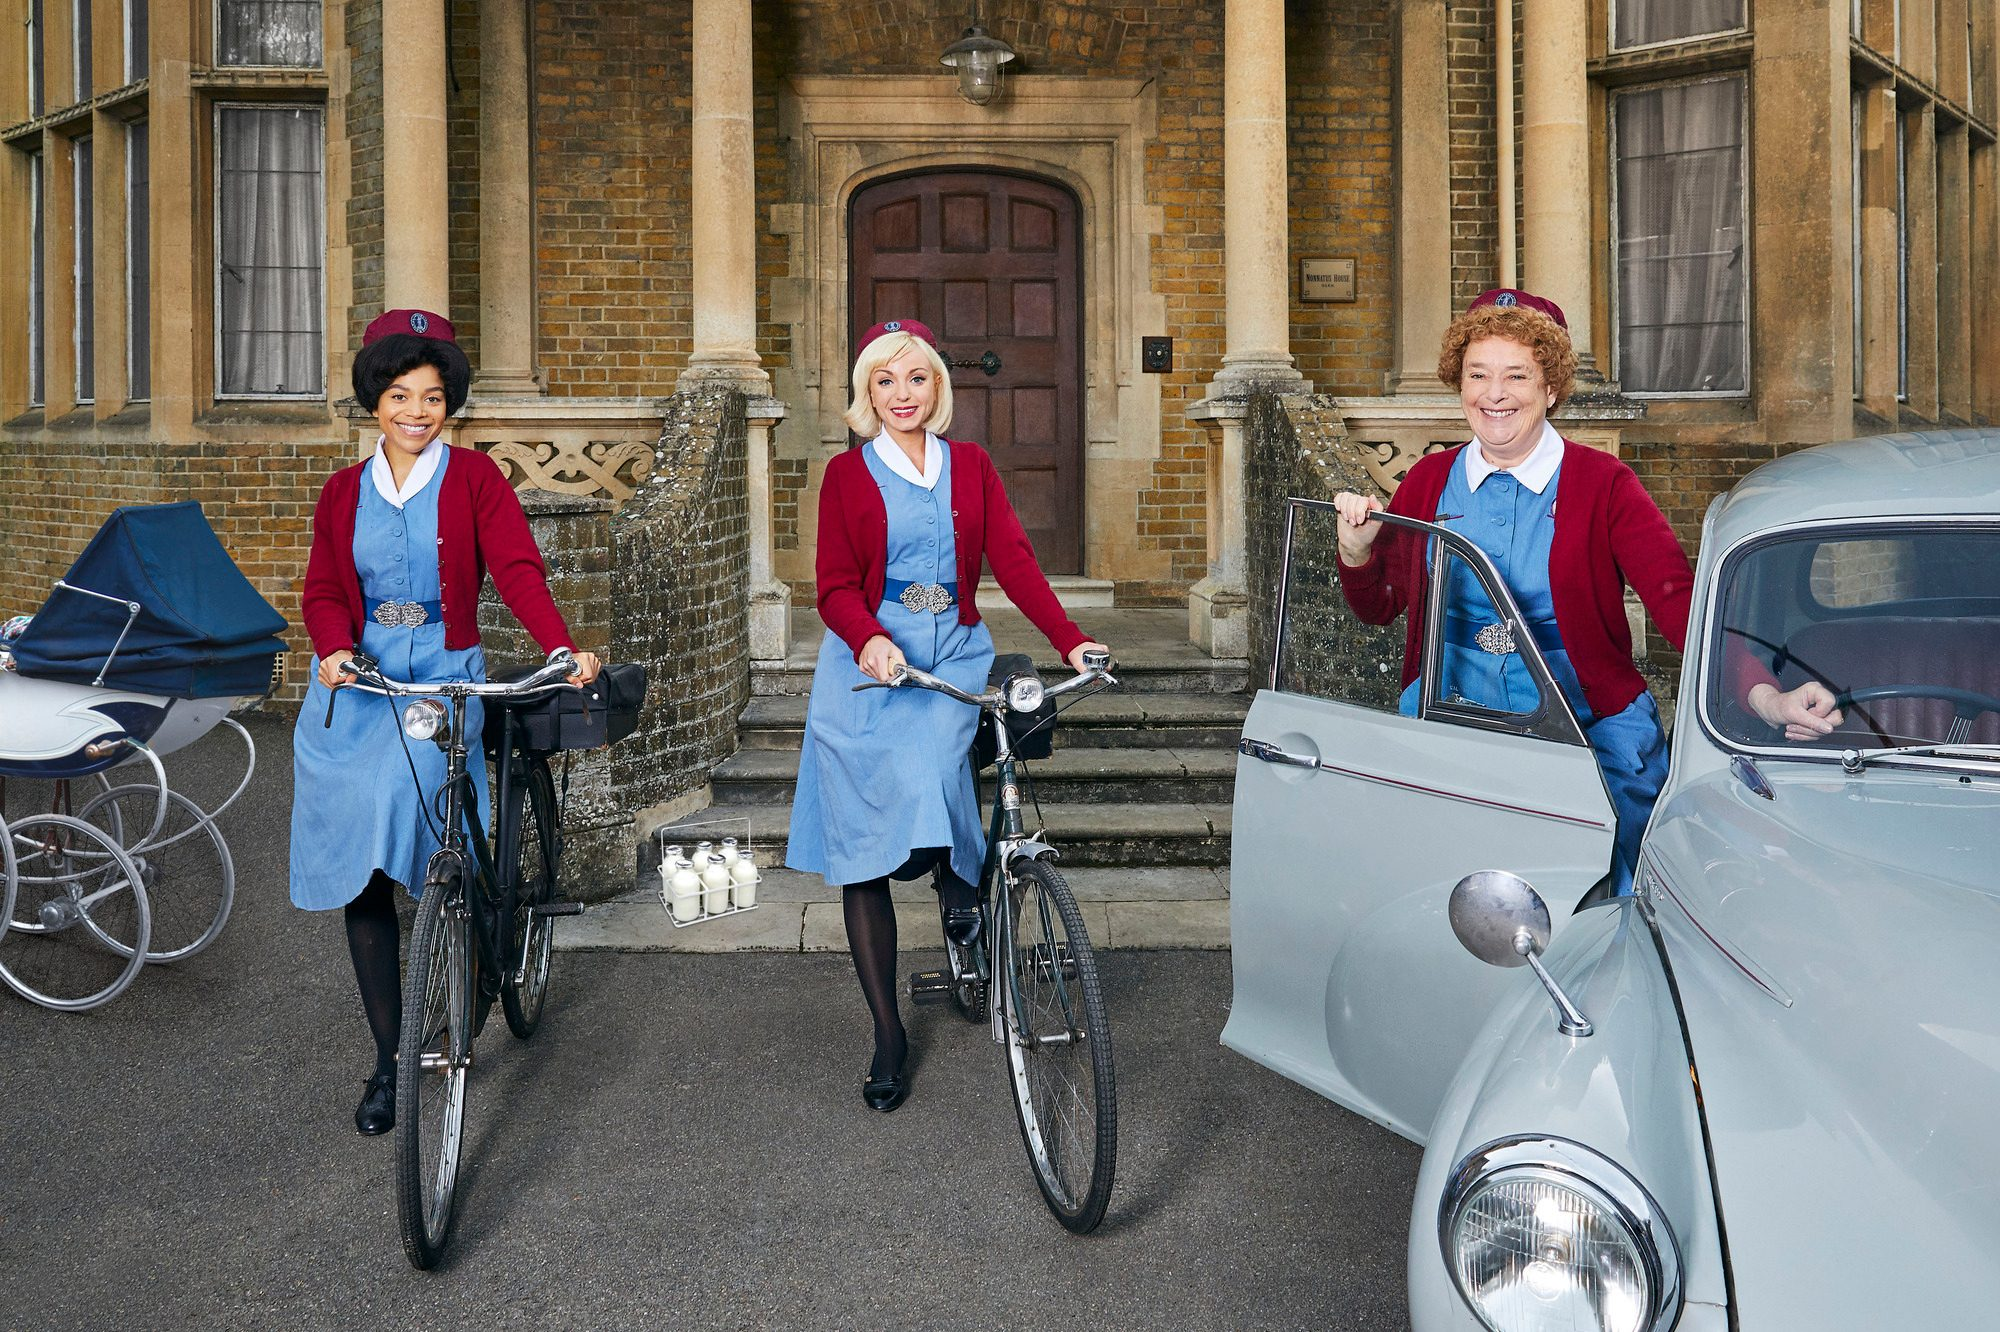 Call The Midwife series 11 and Christmas special now